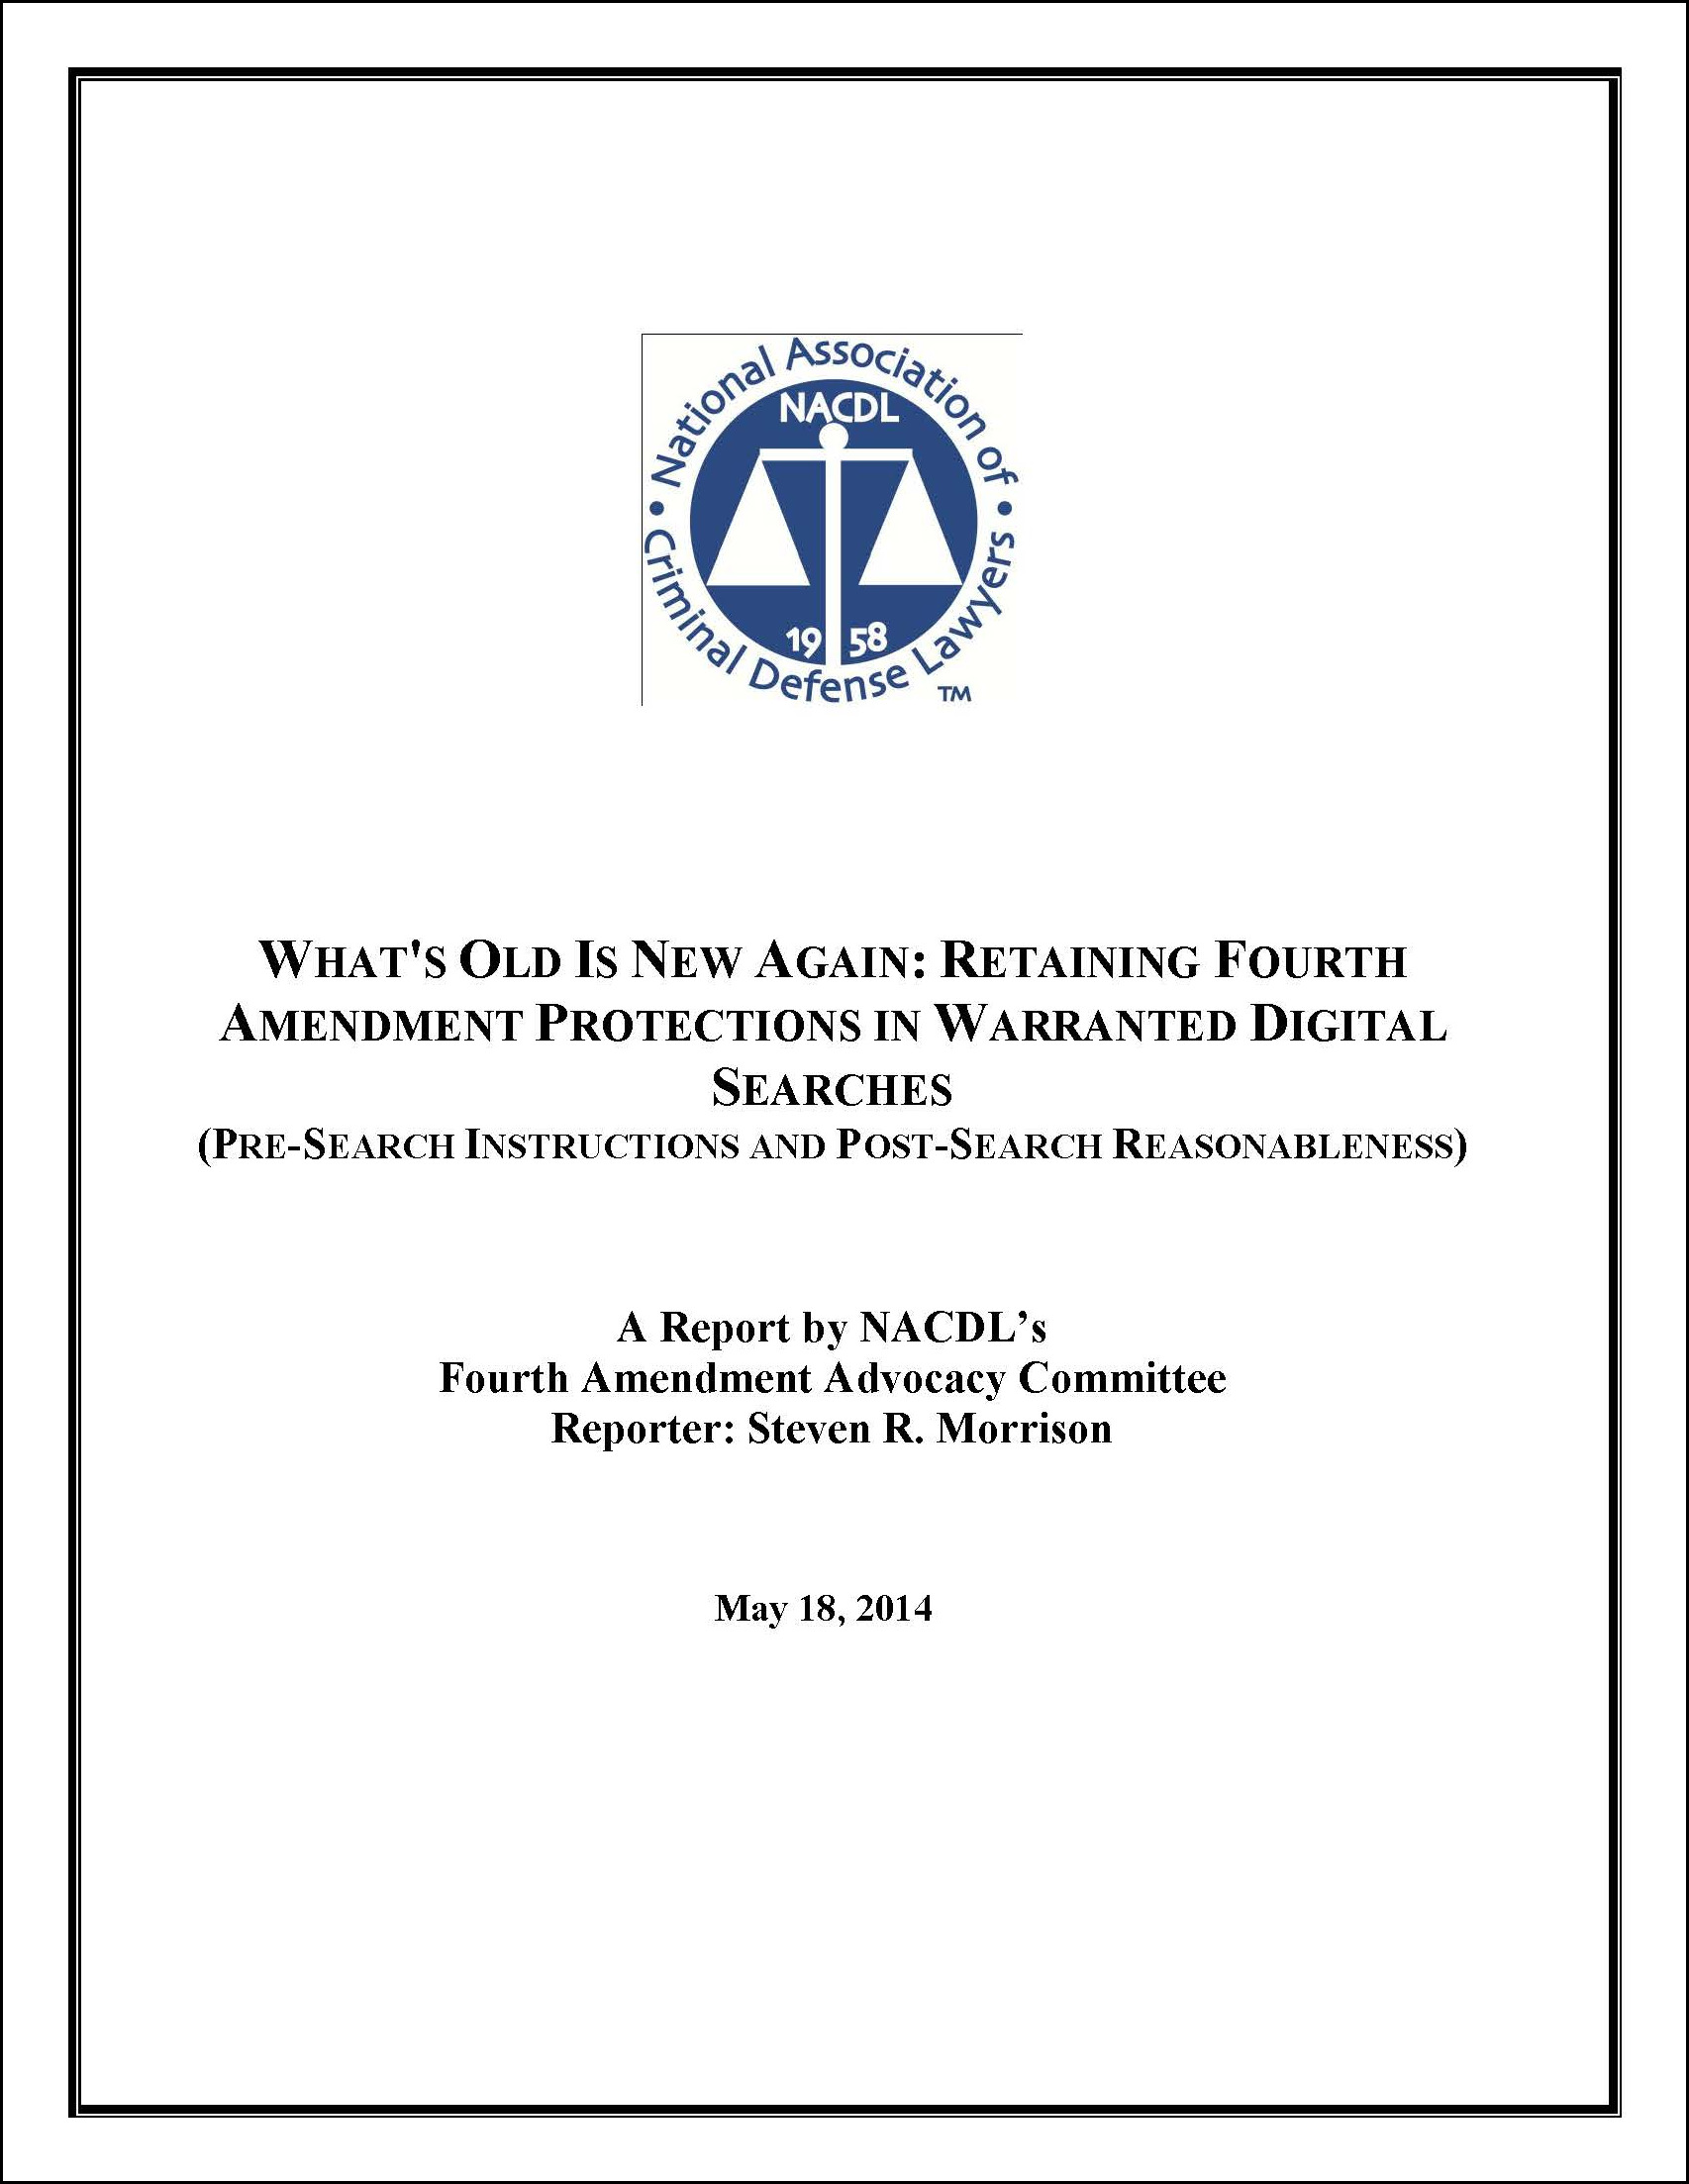 What's Old is New Again: Retaining Fourth Amendment Protections in Warranted Digital Searches Cover